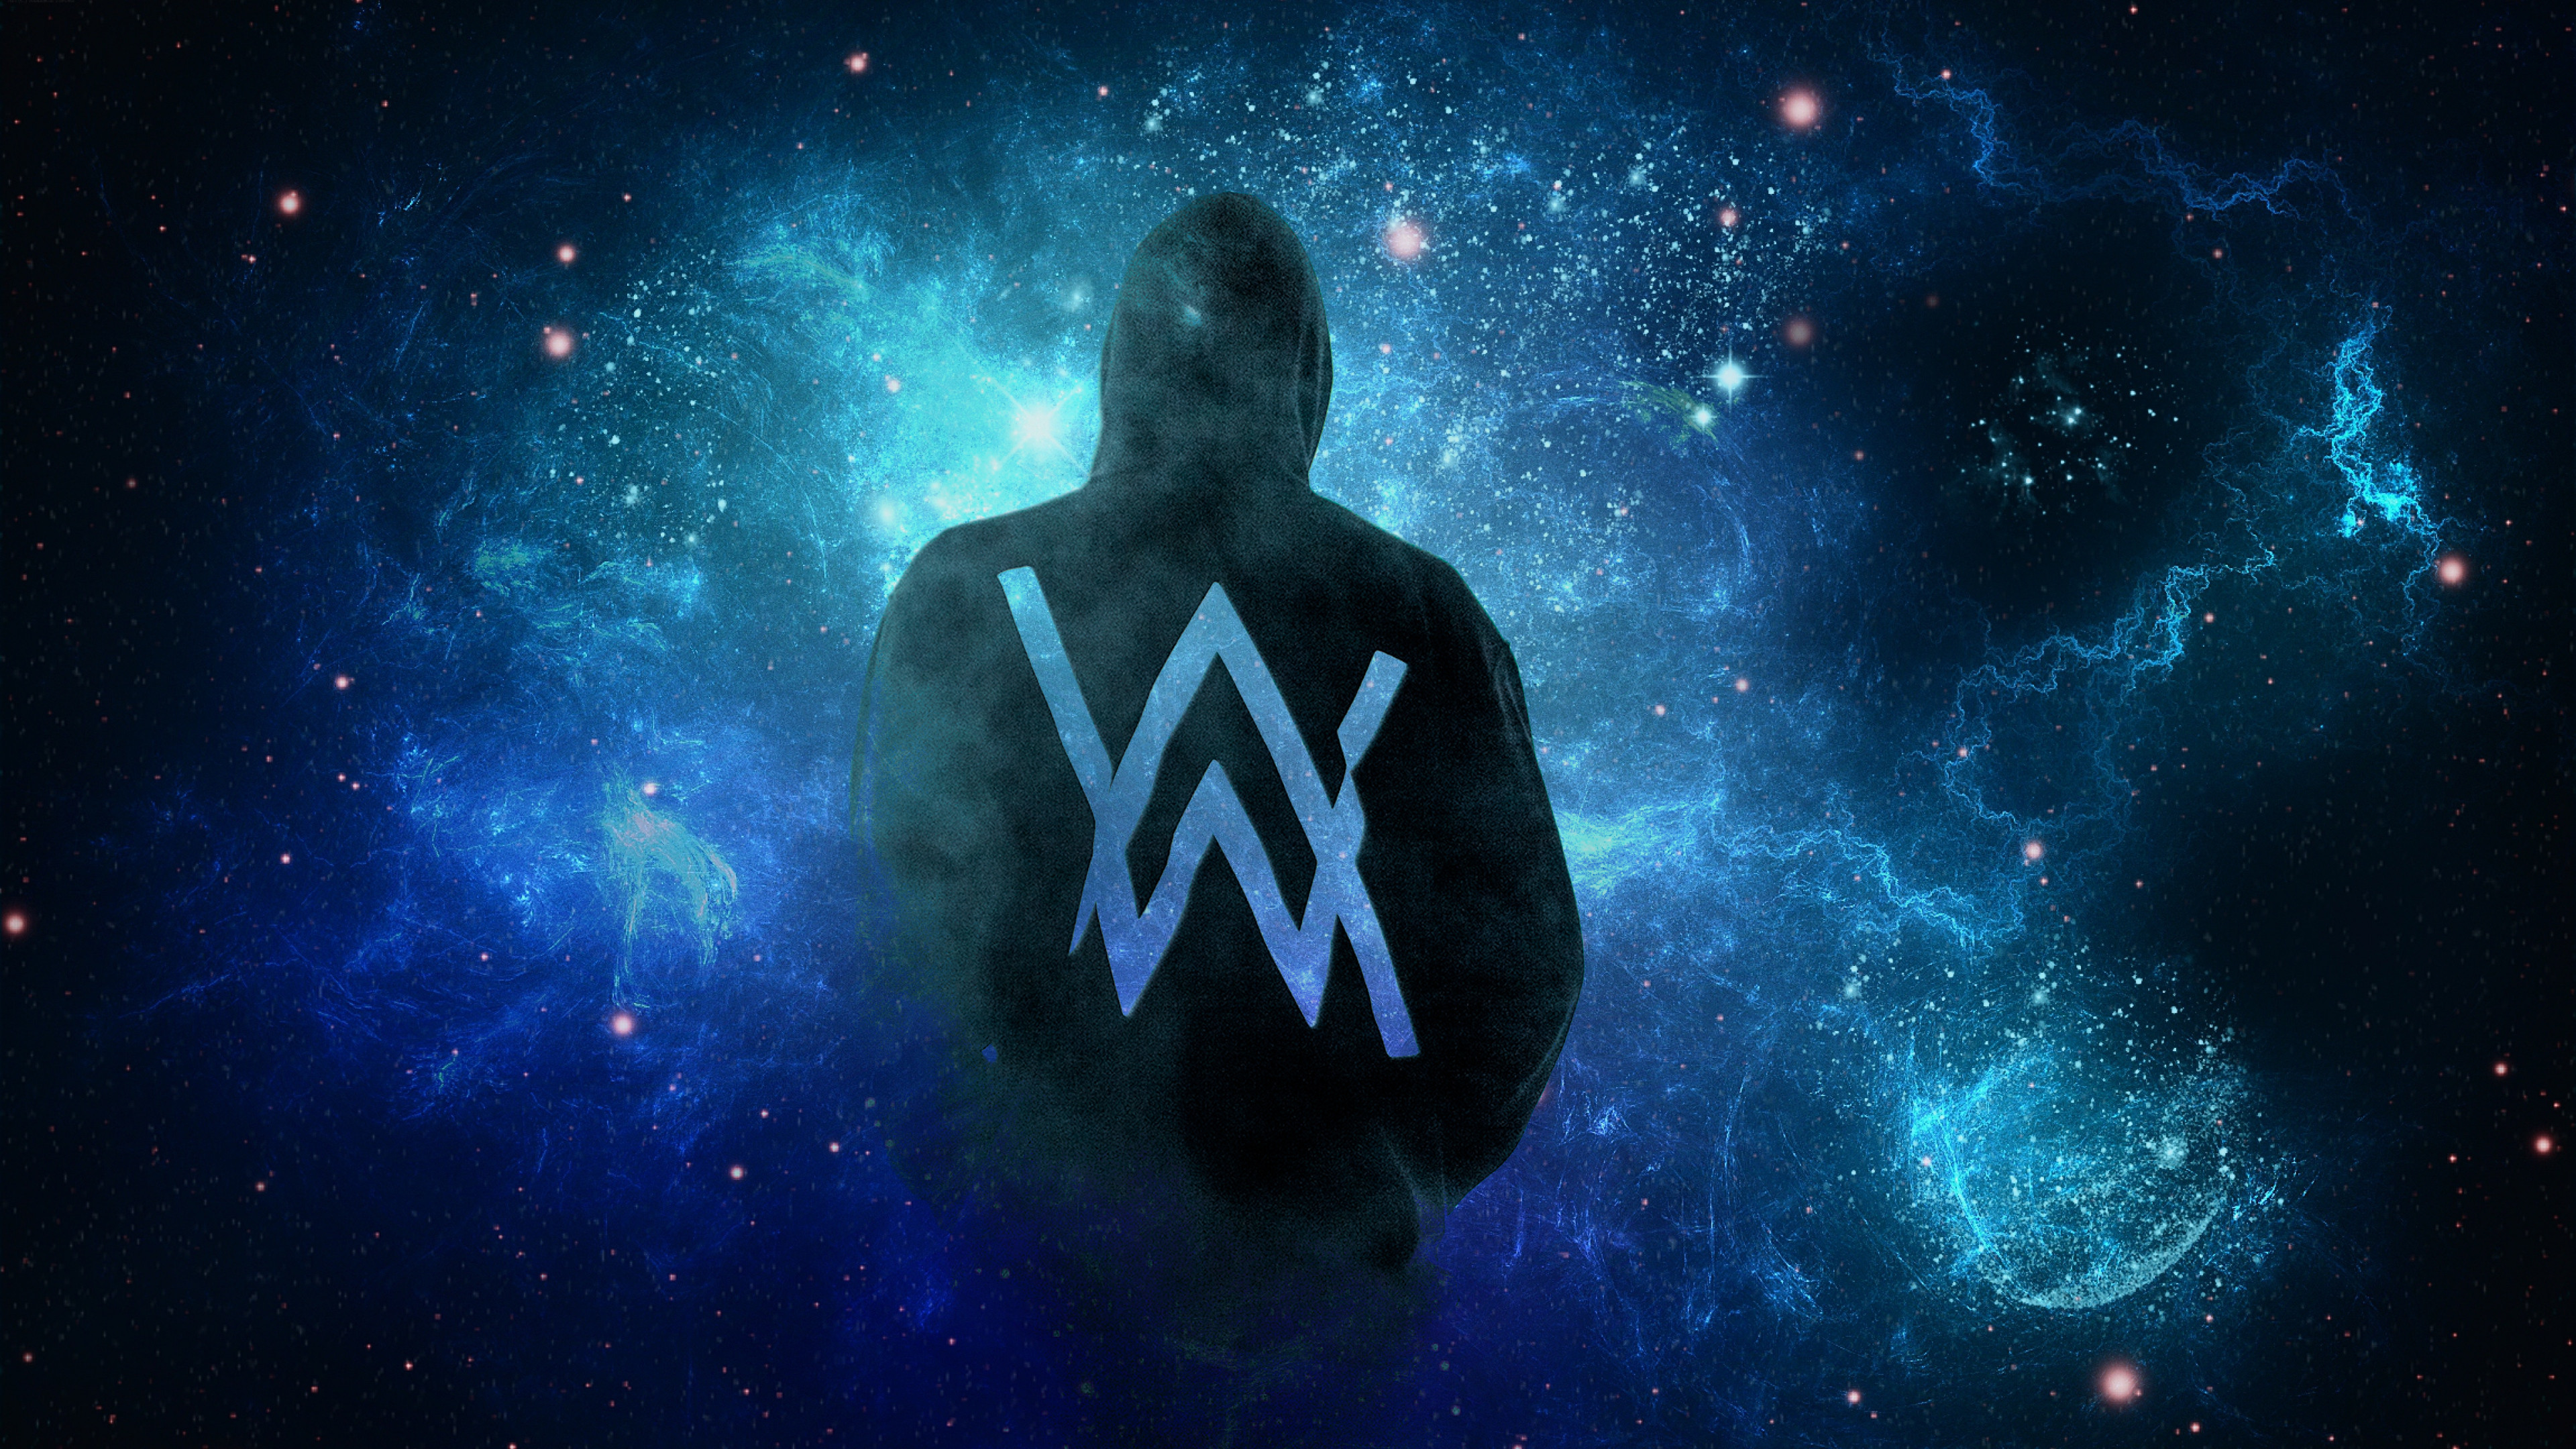 Res: 3840x2160, Music - Alan Walker DJ Music Wallpaper